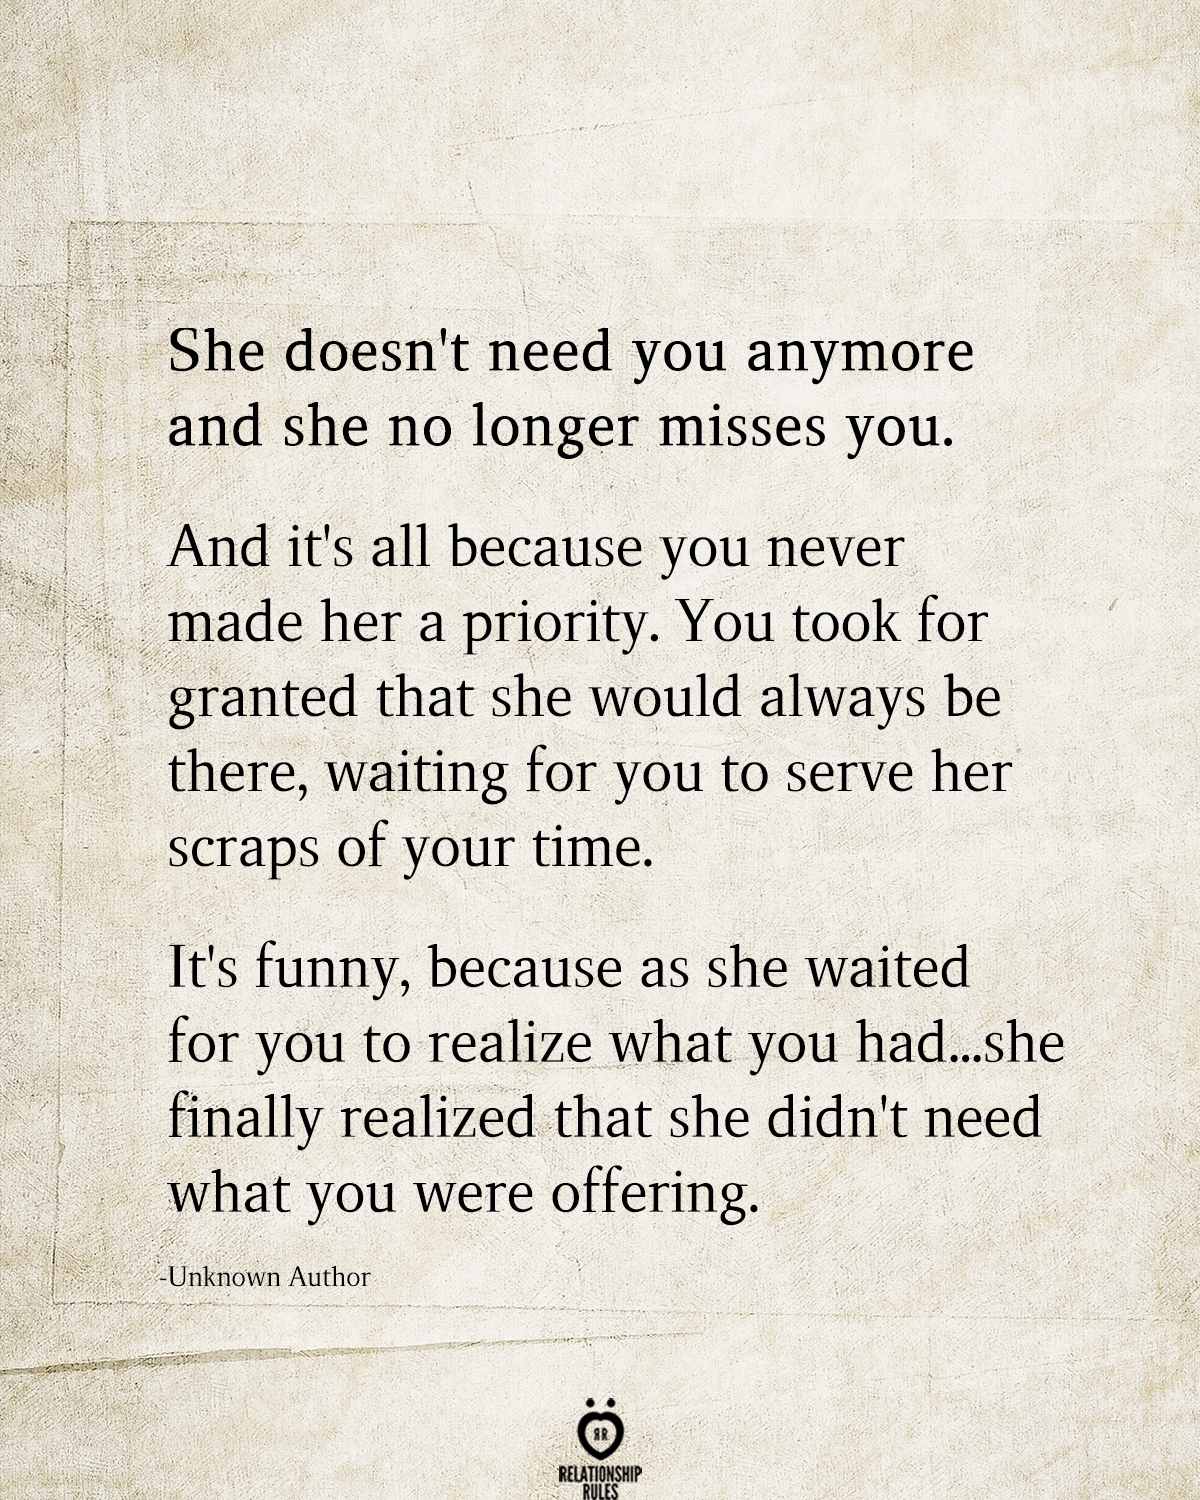 She Doesn't Need You Anymore And She No Longer Misses You